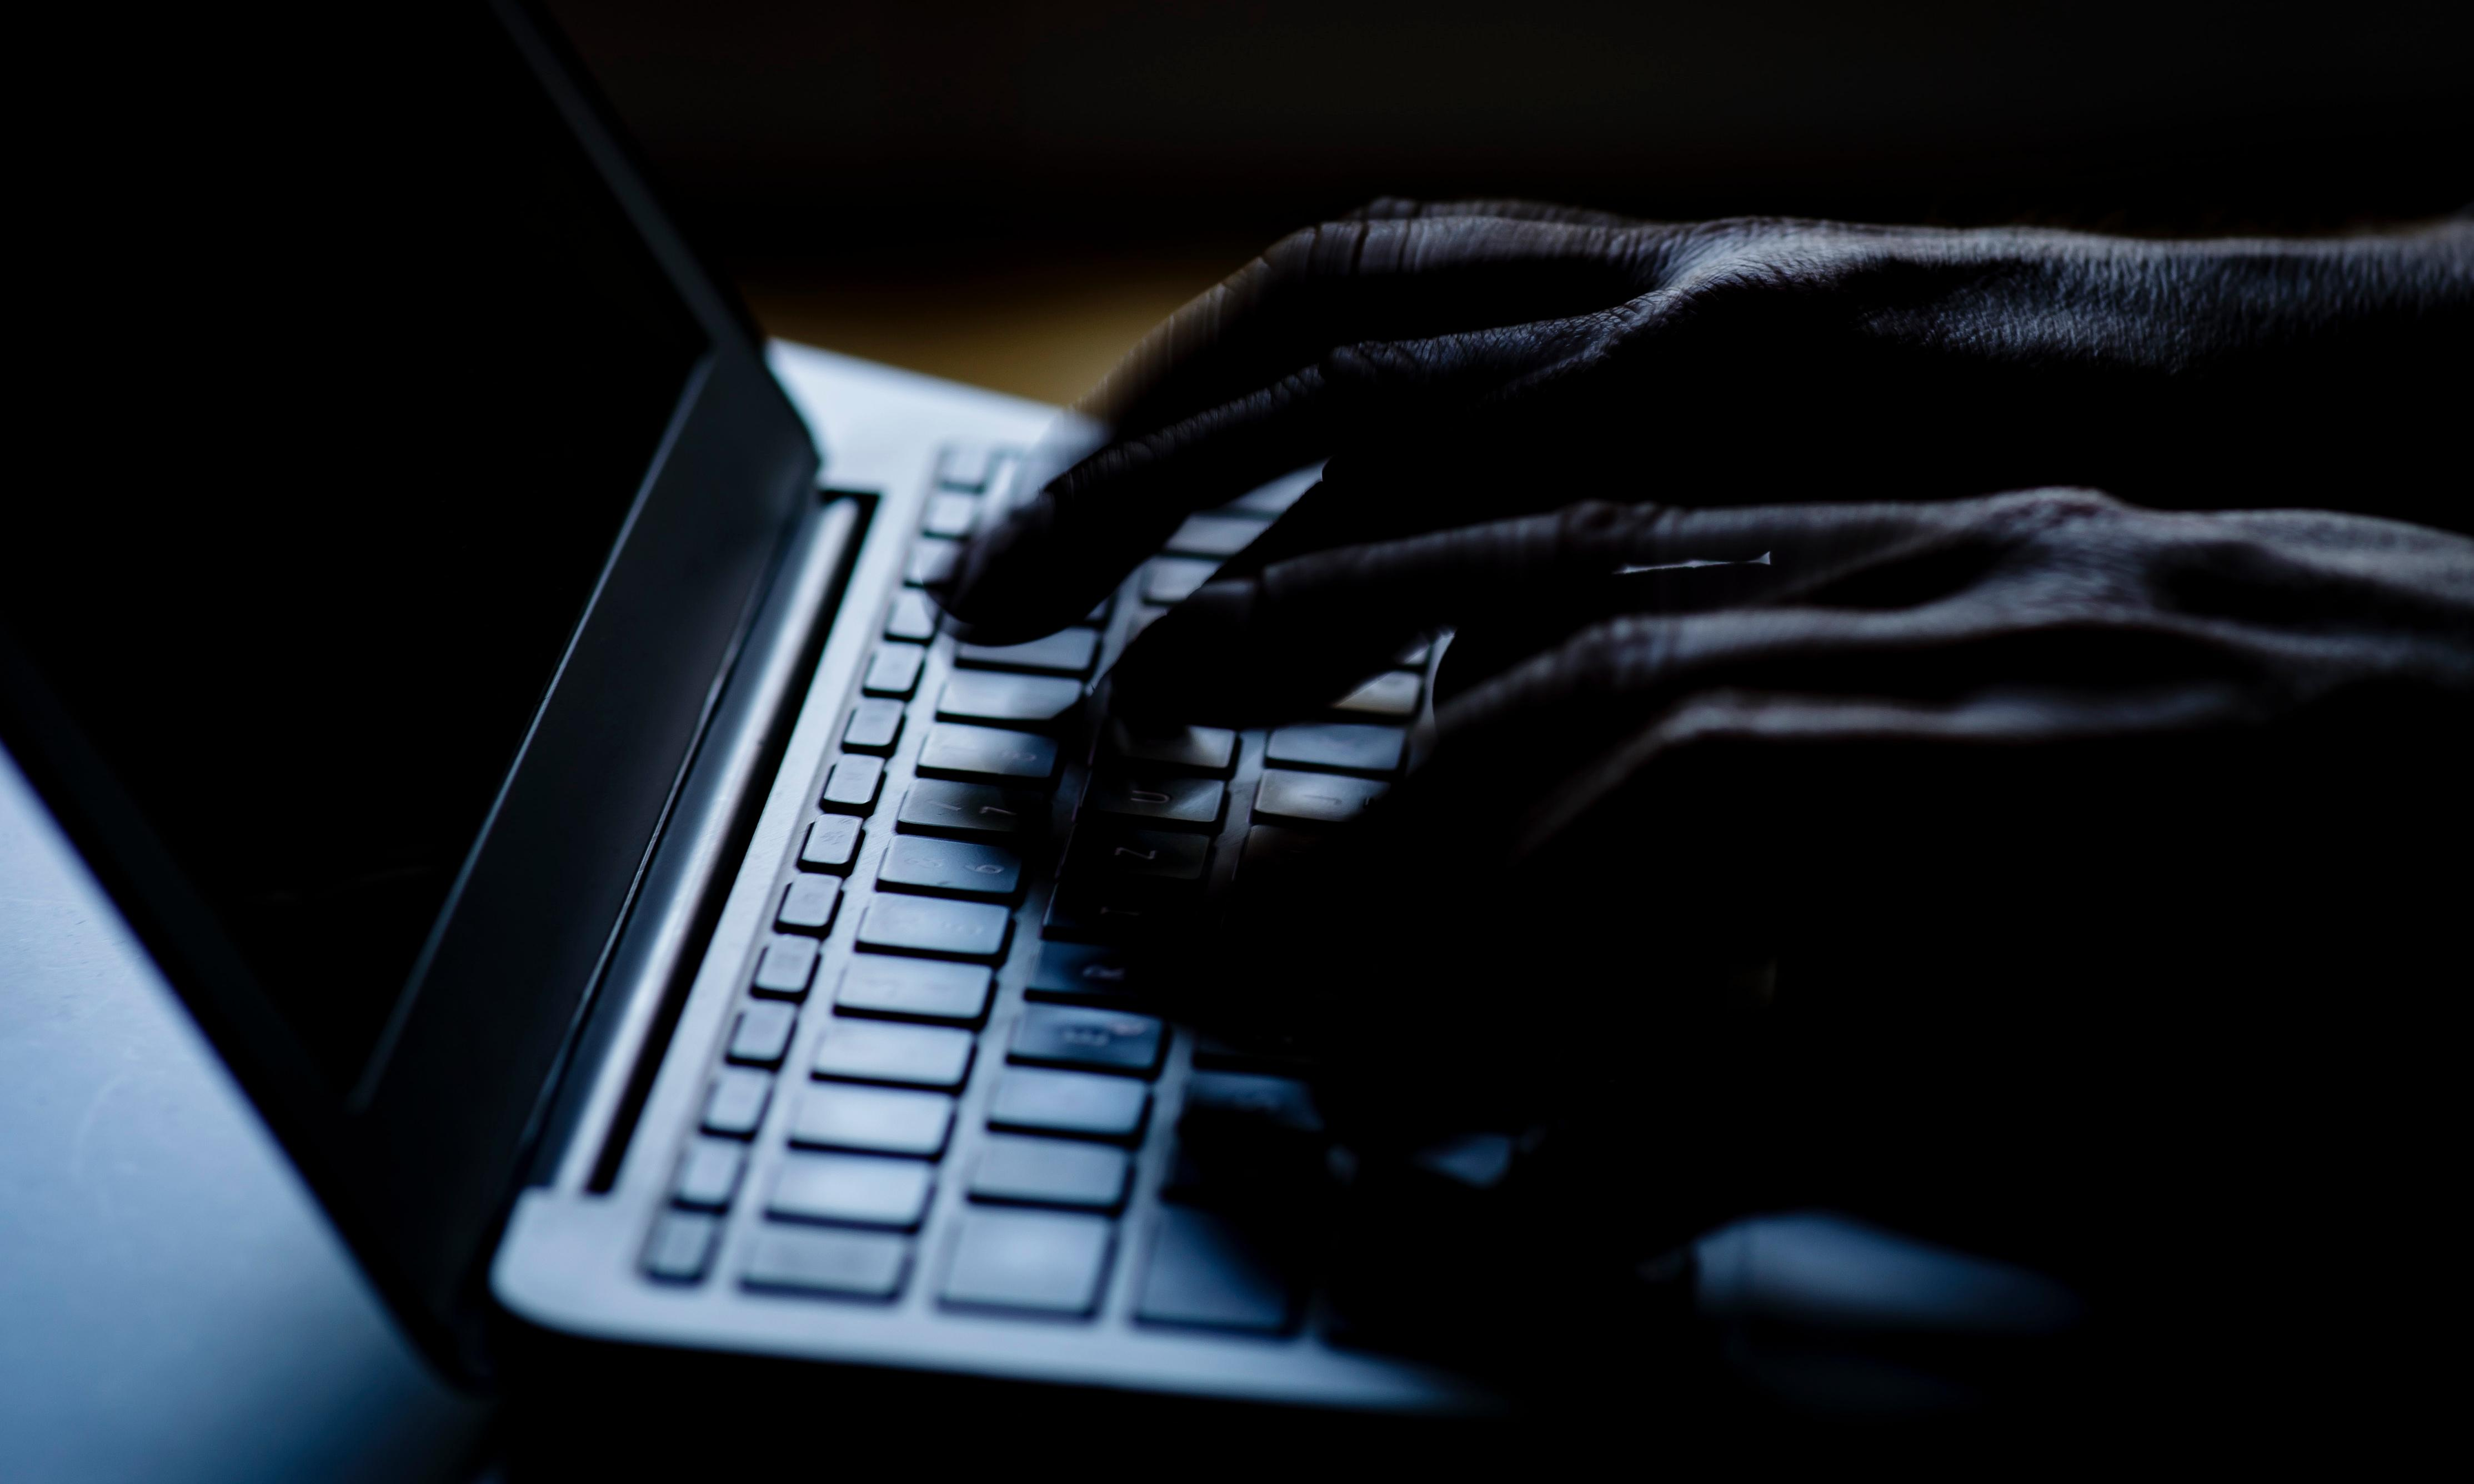 UK to launch specialist cyber force able to target terror groups